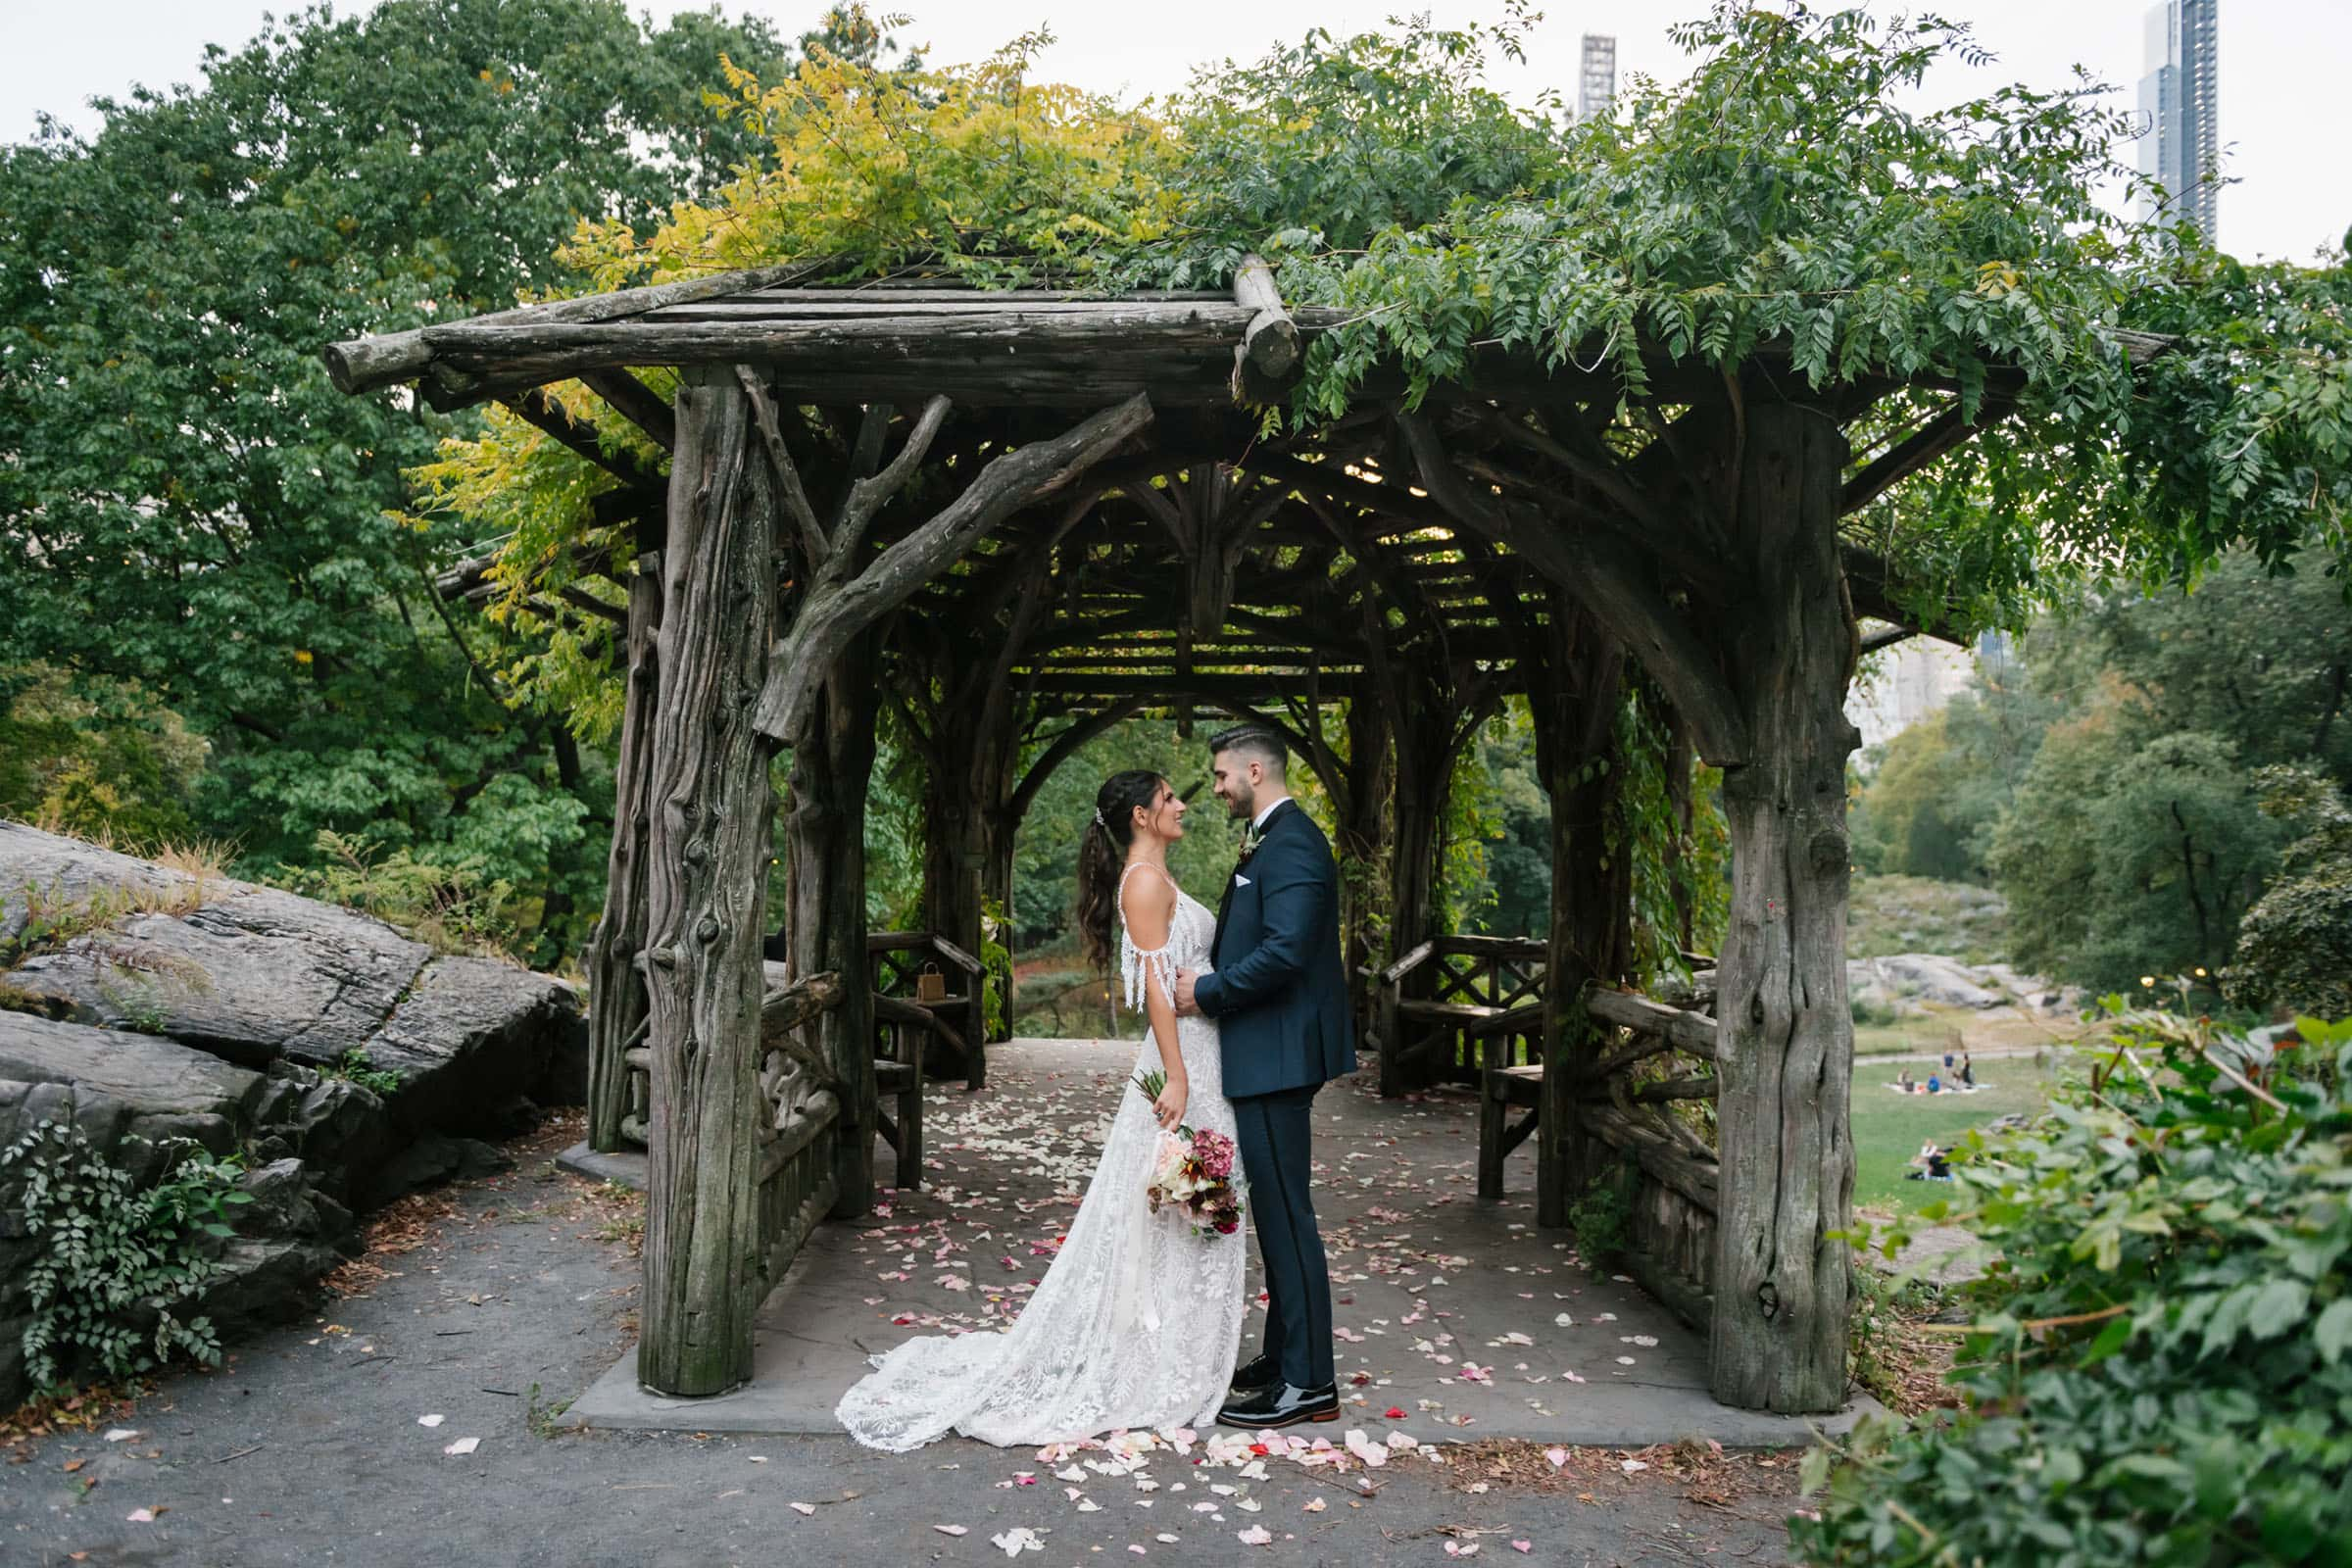 A treehouse for dreaming wedding in Central Park, New York City